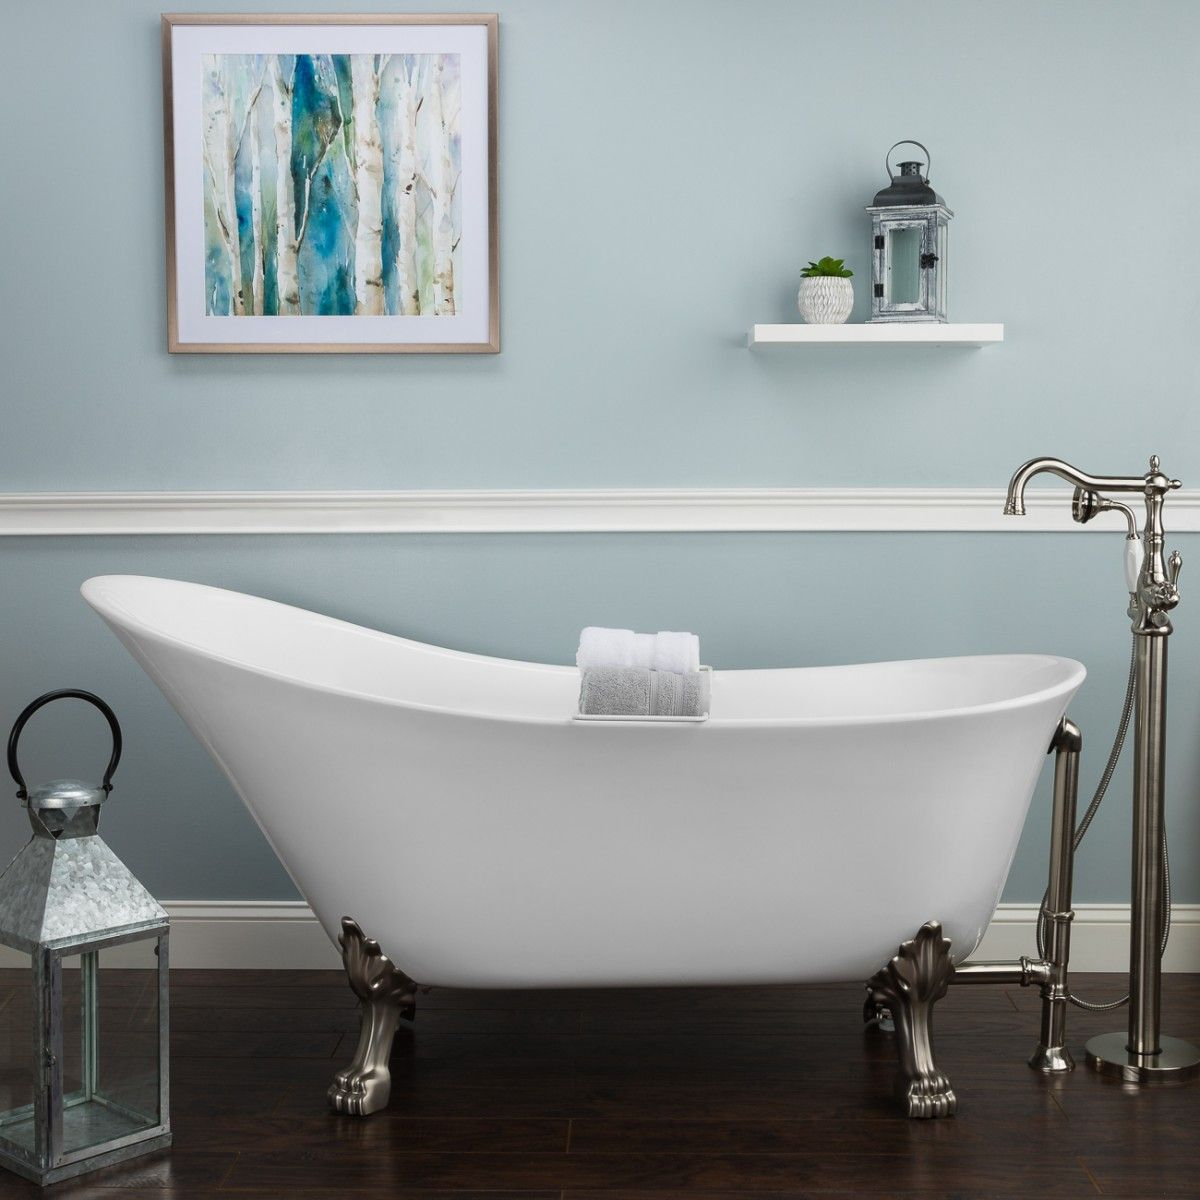 The Shape Of This Randolph Morris Nora Slipper Clawfoot Tub Encourages A Long Luxurious Soak After A Long Day Spen Clawfoot Tub Bathroom Decor Bathroom Design